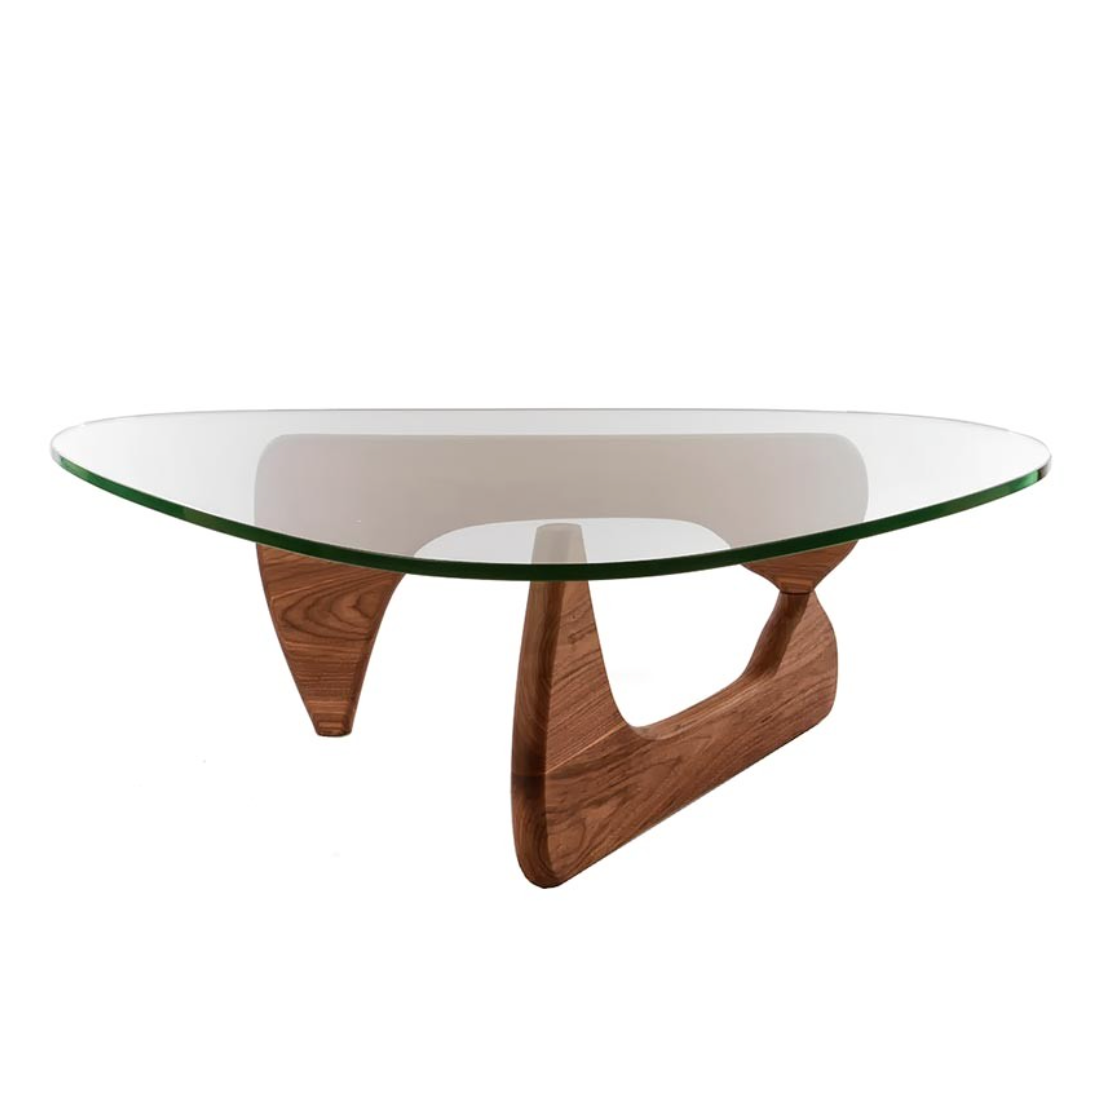 noguchi coffee table mikaza meubles modernes montreal modern furniture ottawa. Black Bedroom Furniture Sets. Home Design Ideas